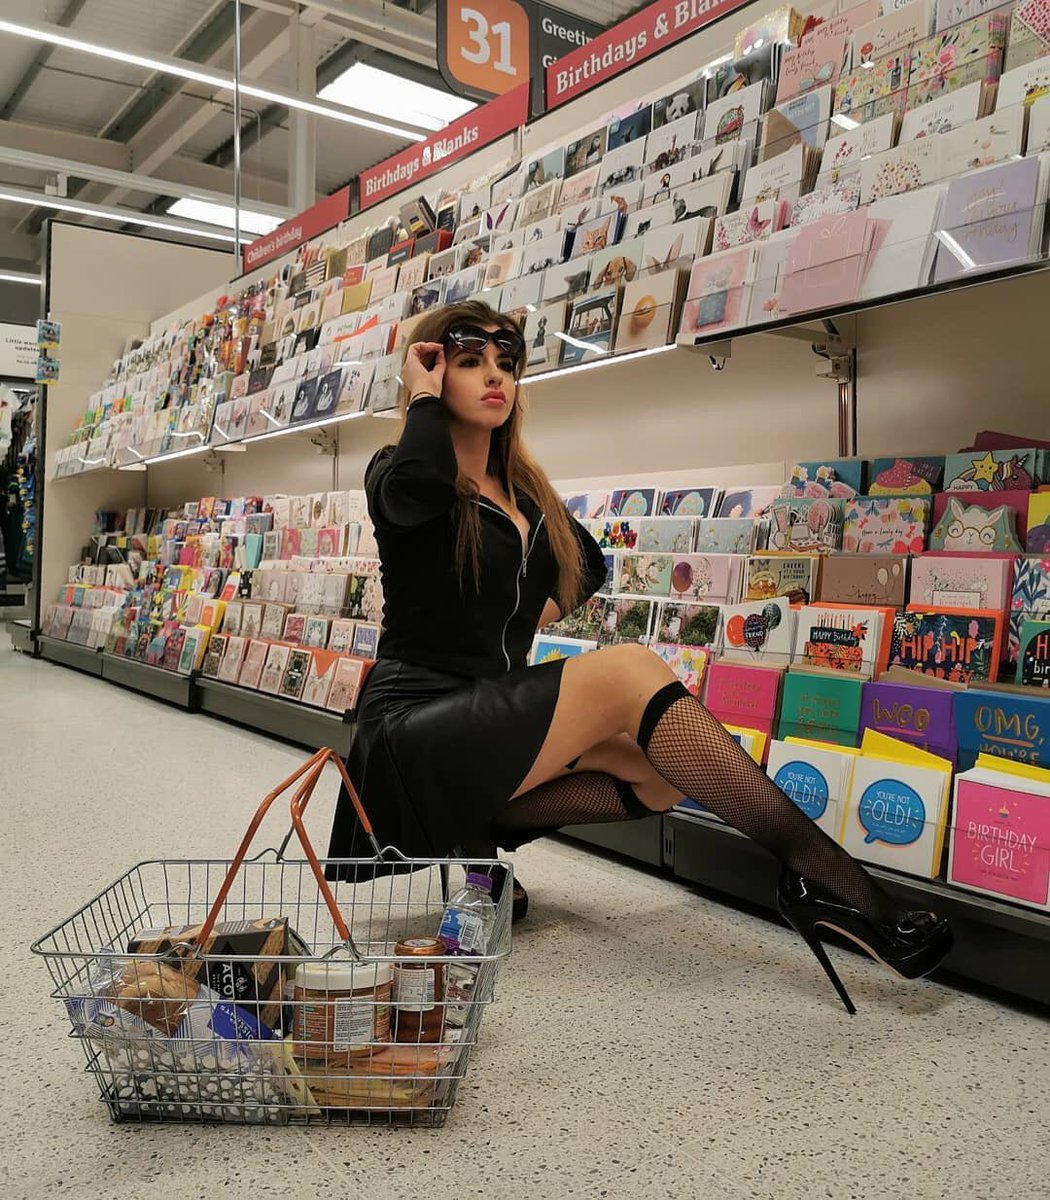 @alexajanem When you see soilders and policemen patrolling the supermarkets.  Respect to all key workers, especially NHS workers around this time. #picoftheday #instagirls  #essexeelegs1 #freeshoutouts #followback #repost #alexajanem #fishnetsocks https://essexeelegs.co.uk/search?type=product&q=Fashion+Socks …pic.twitter.com/OC99plrhUj